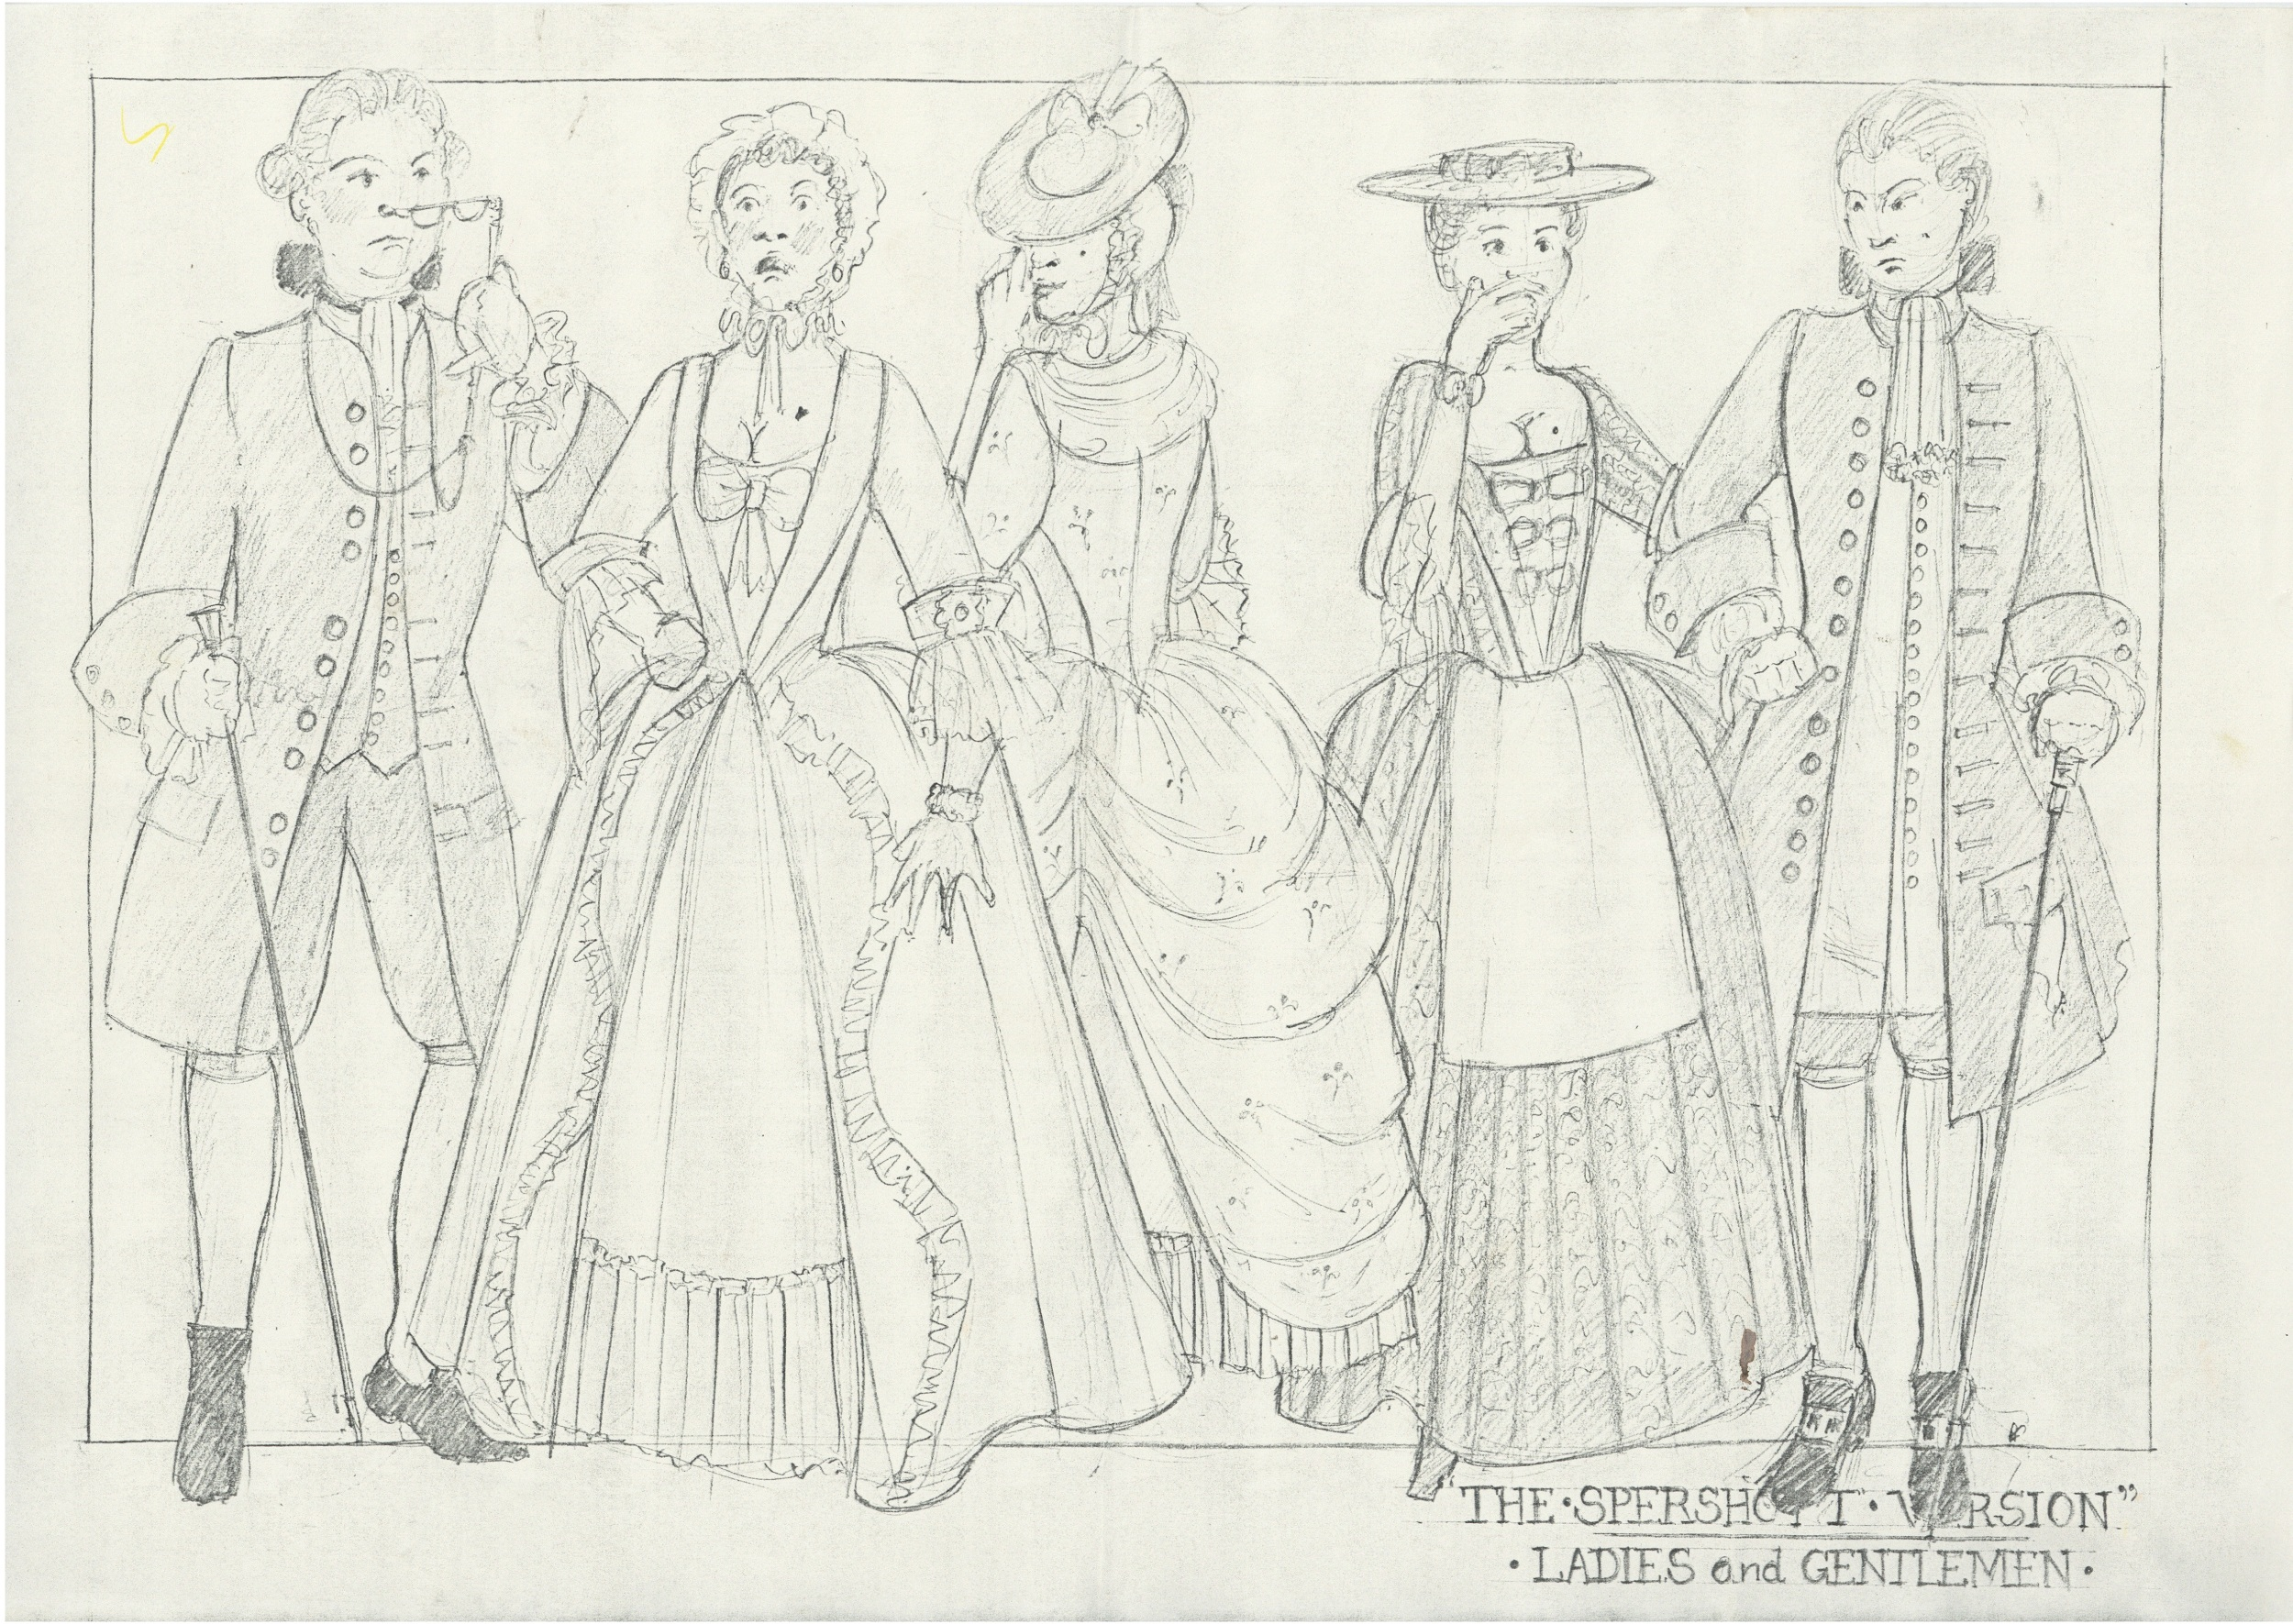 The Spershott Version 1986 Costume designs ladies & gentlemen